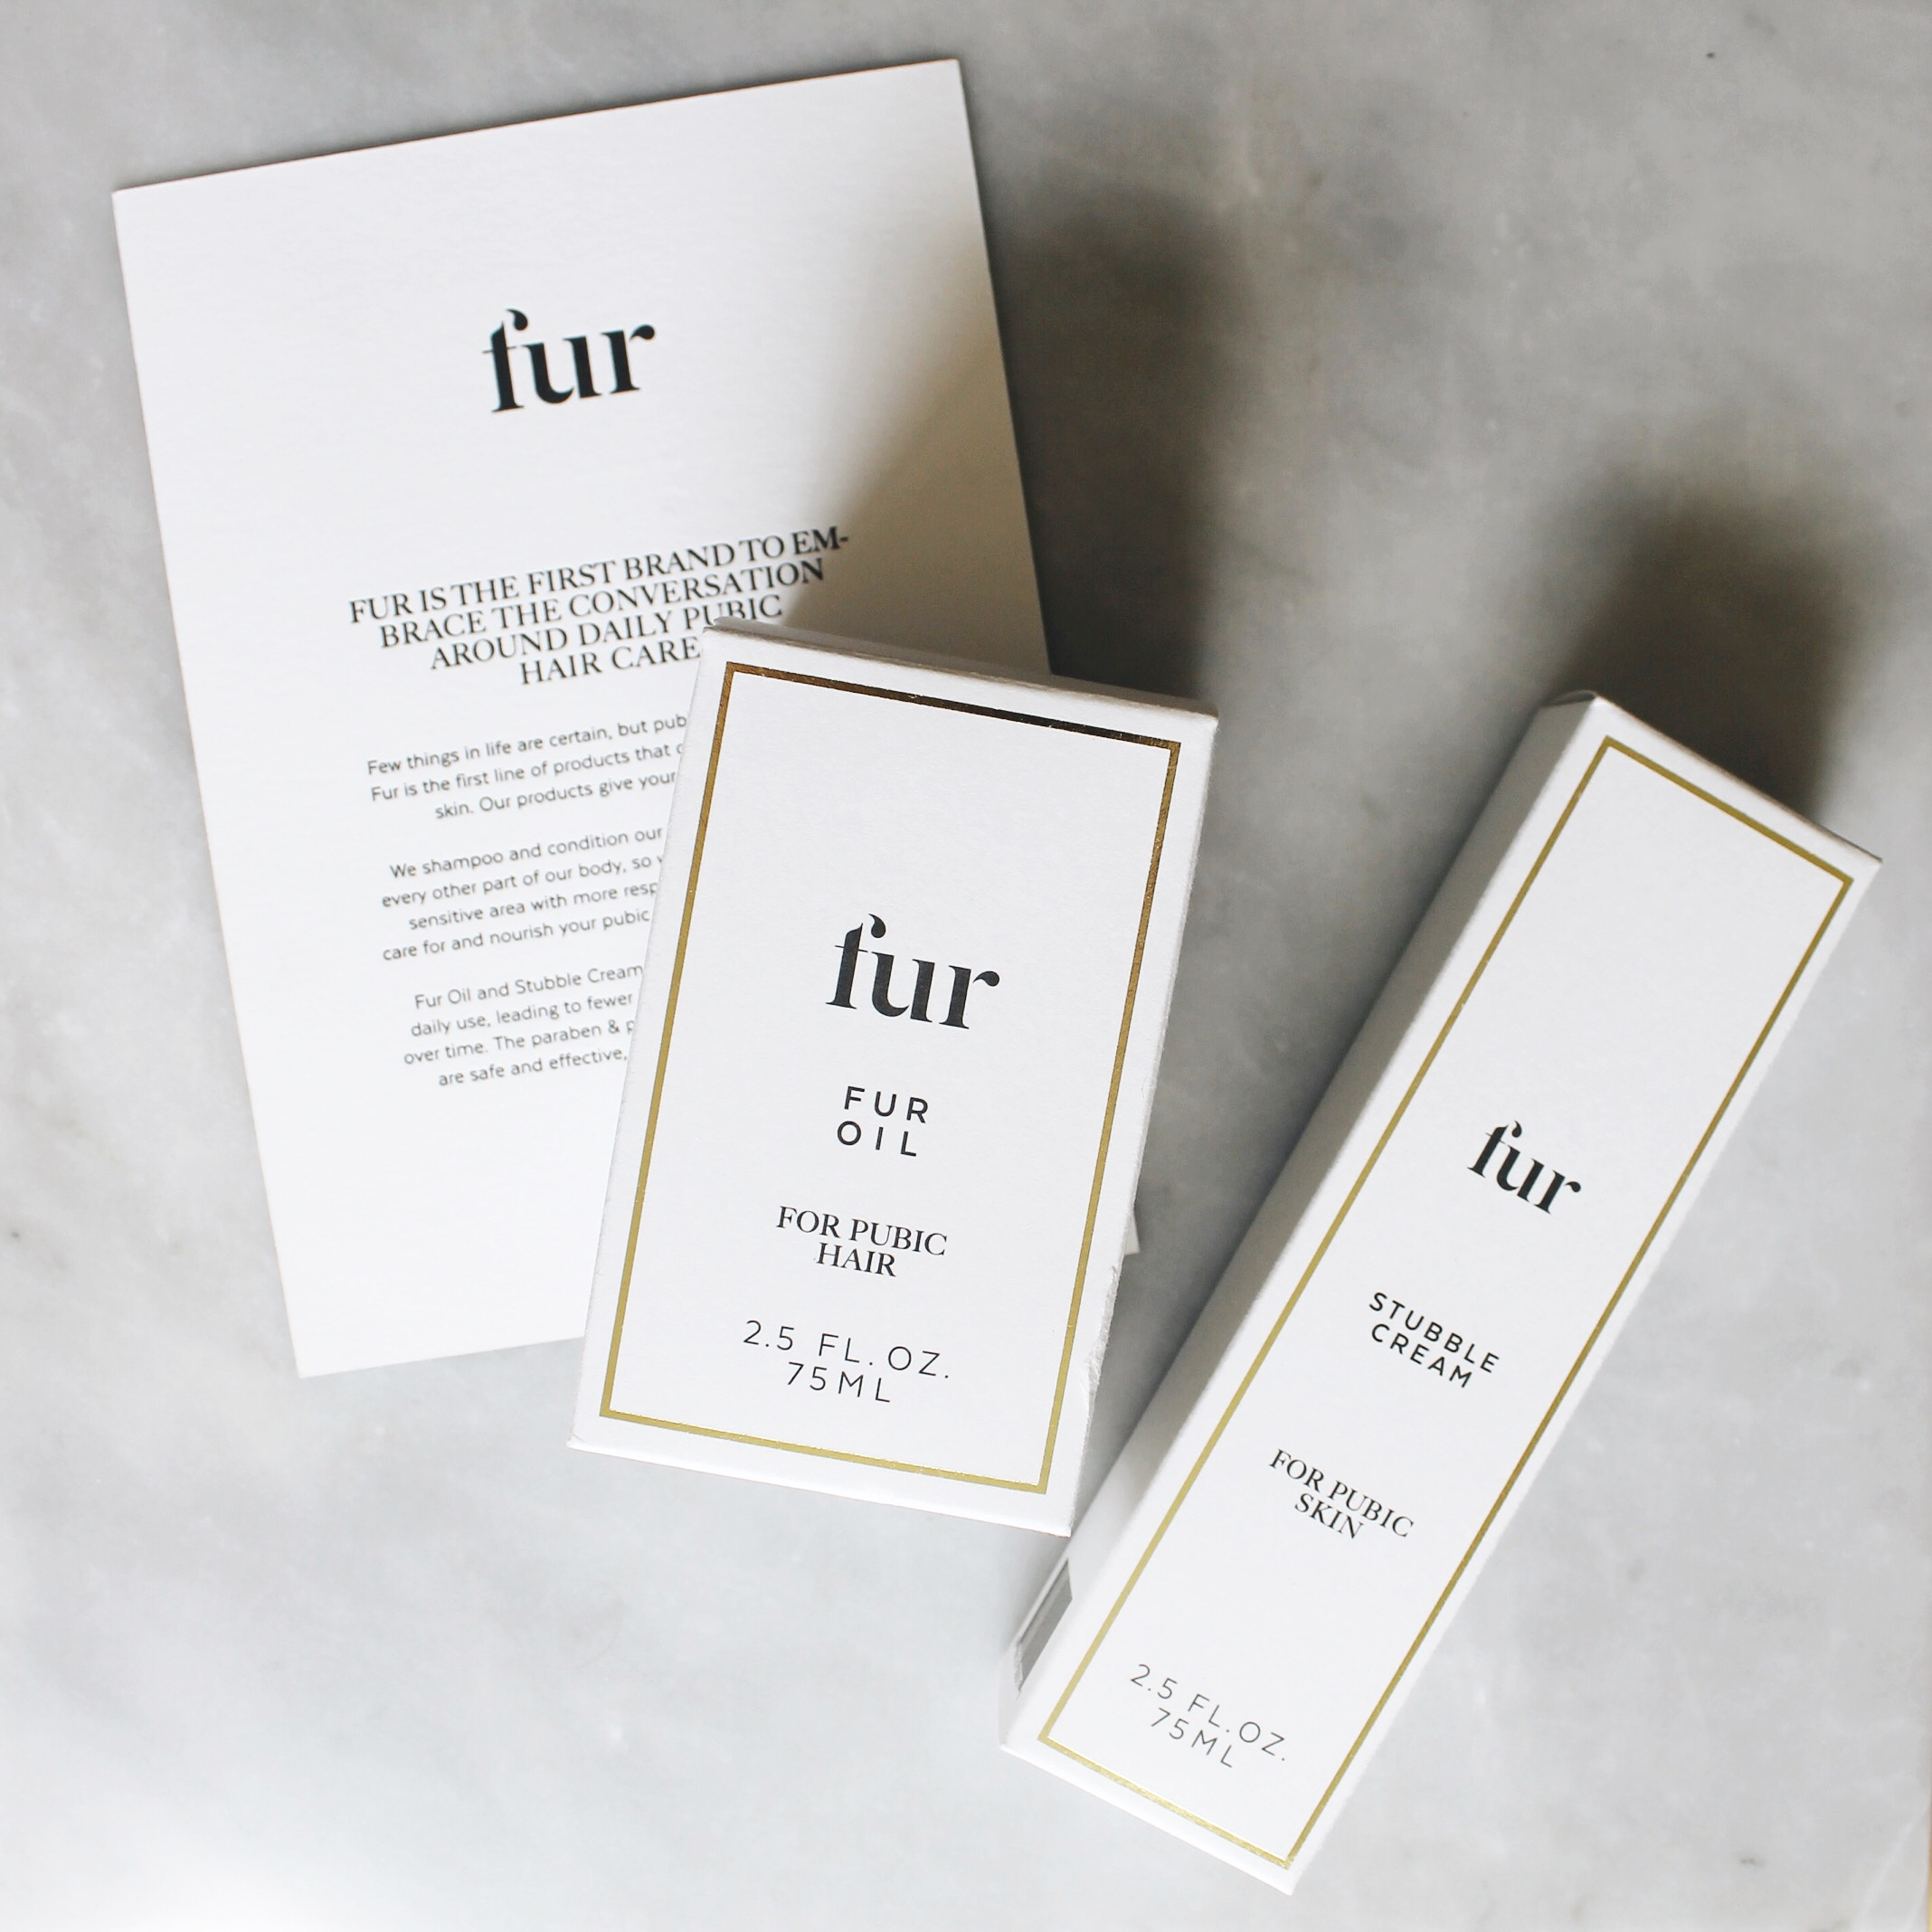 Fur, Fur Beauty, Fur Oil, Stubble Cream, Bodycare, Lillian Tung, Fur You